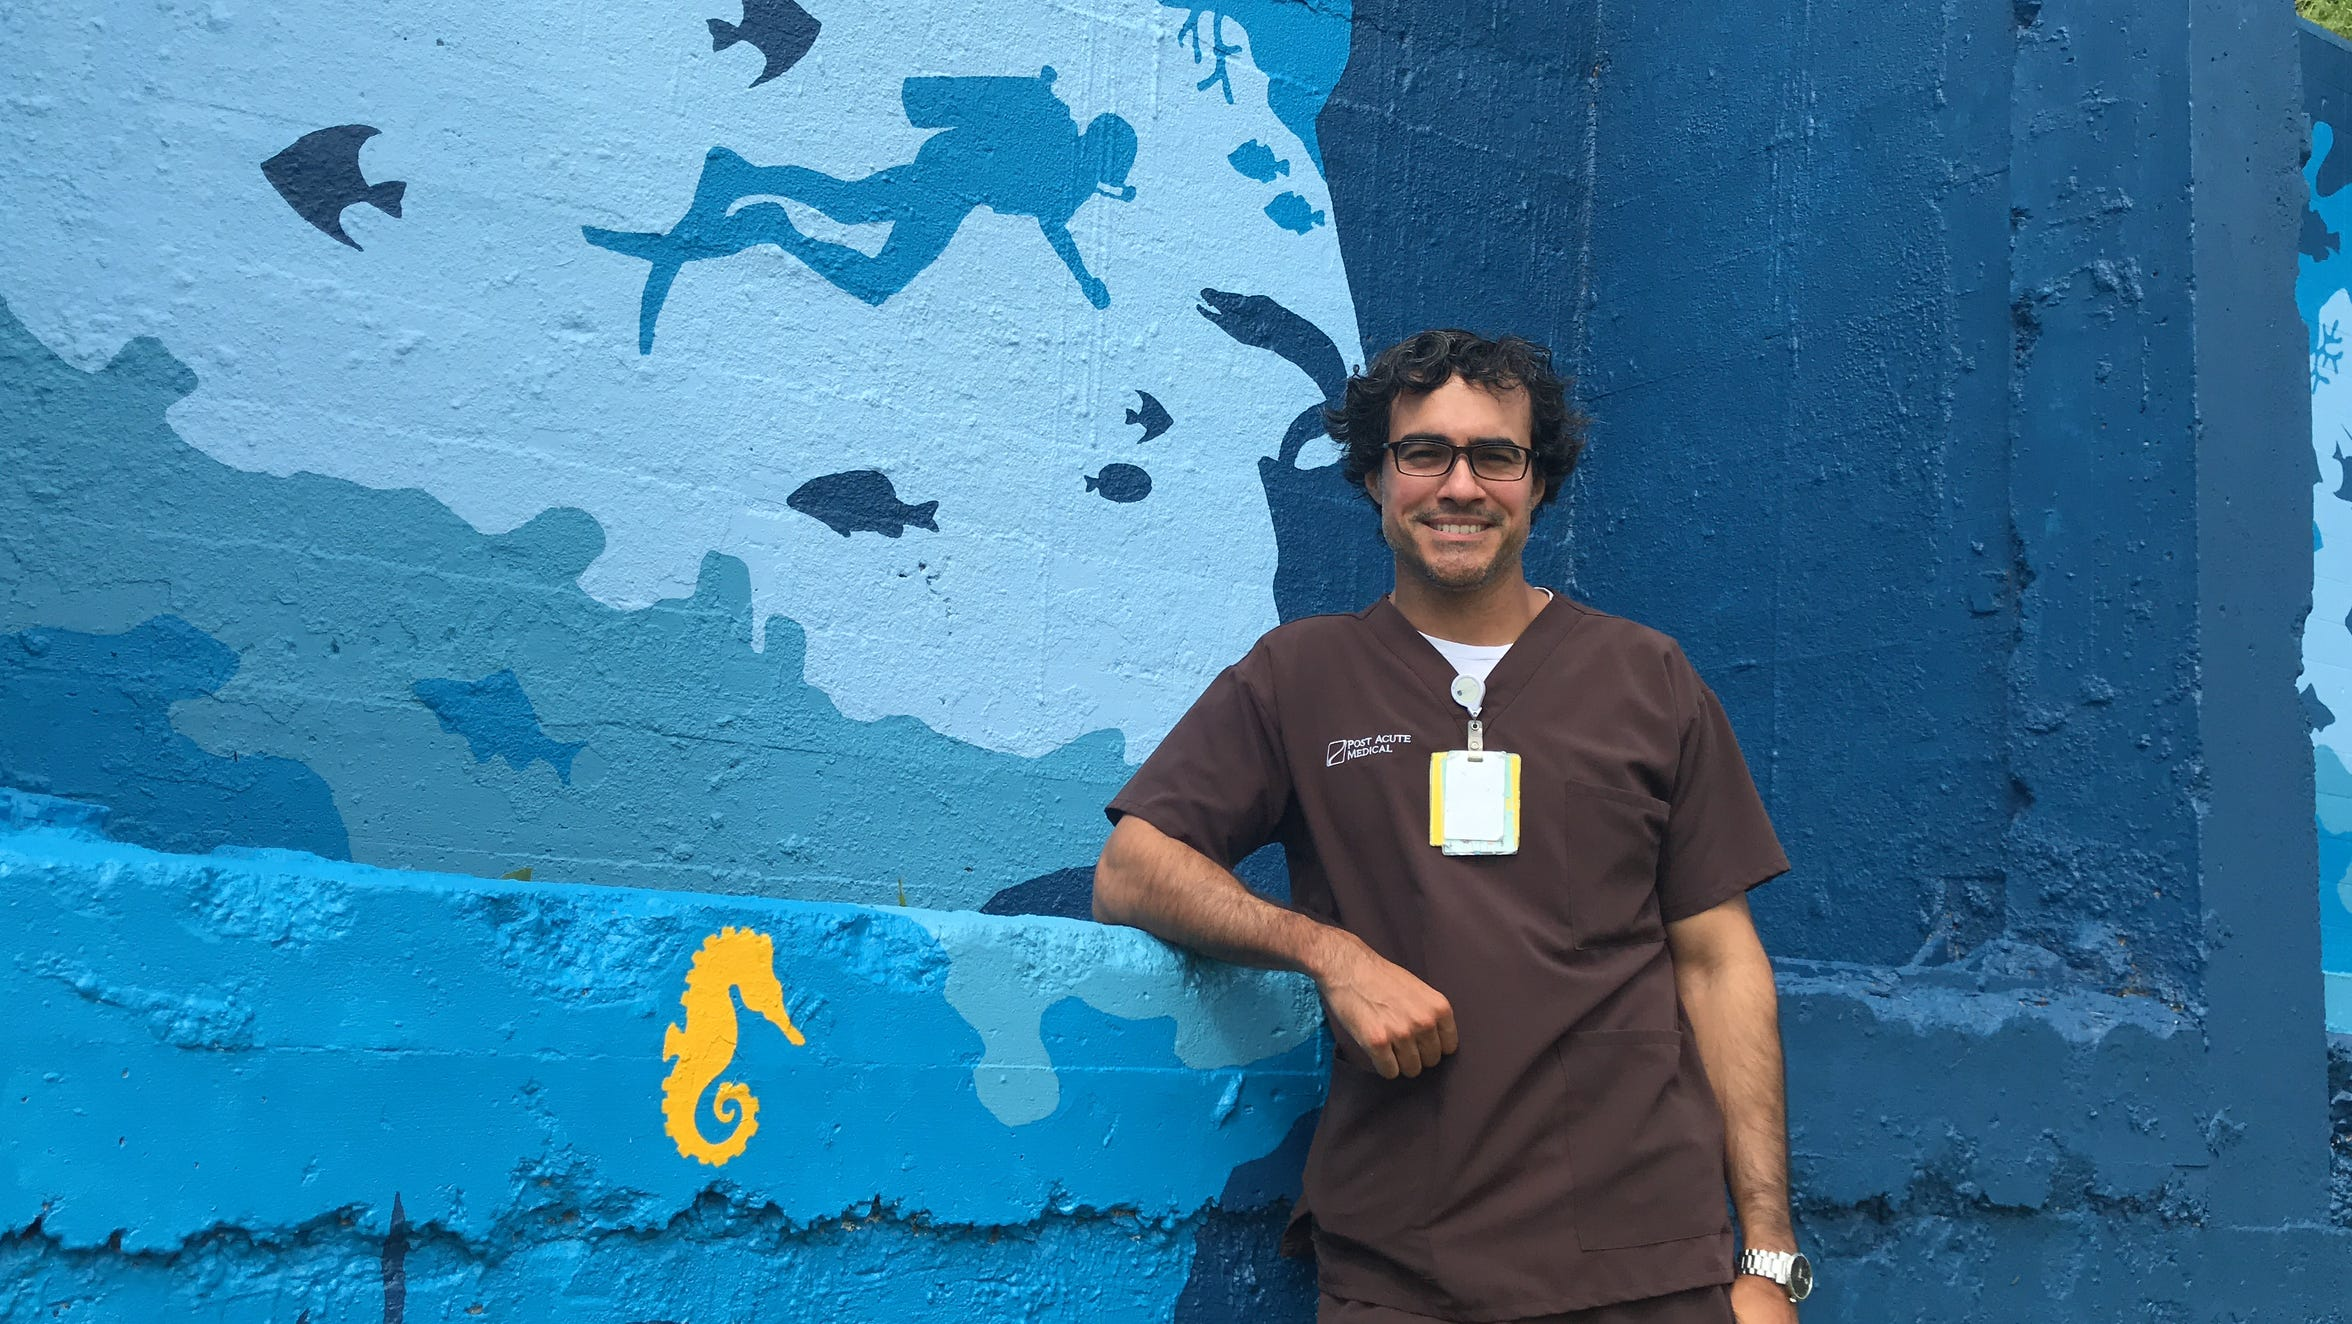 Cristobal Lopez, a physical therapy assistant at Post Acute Medical Rehabilitation Hospital, created a 100-square-foot mural for patients to look at across the street of the hospital in downtown Corpus Christi.